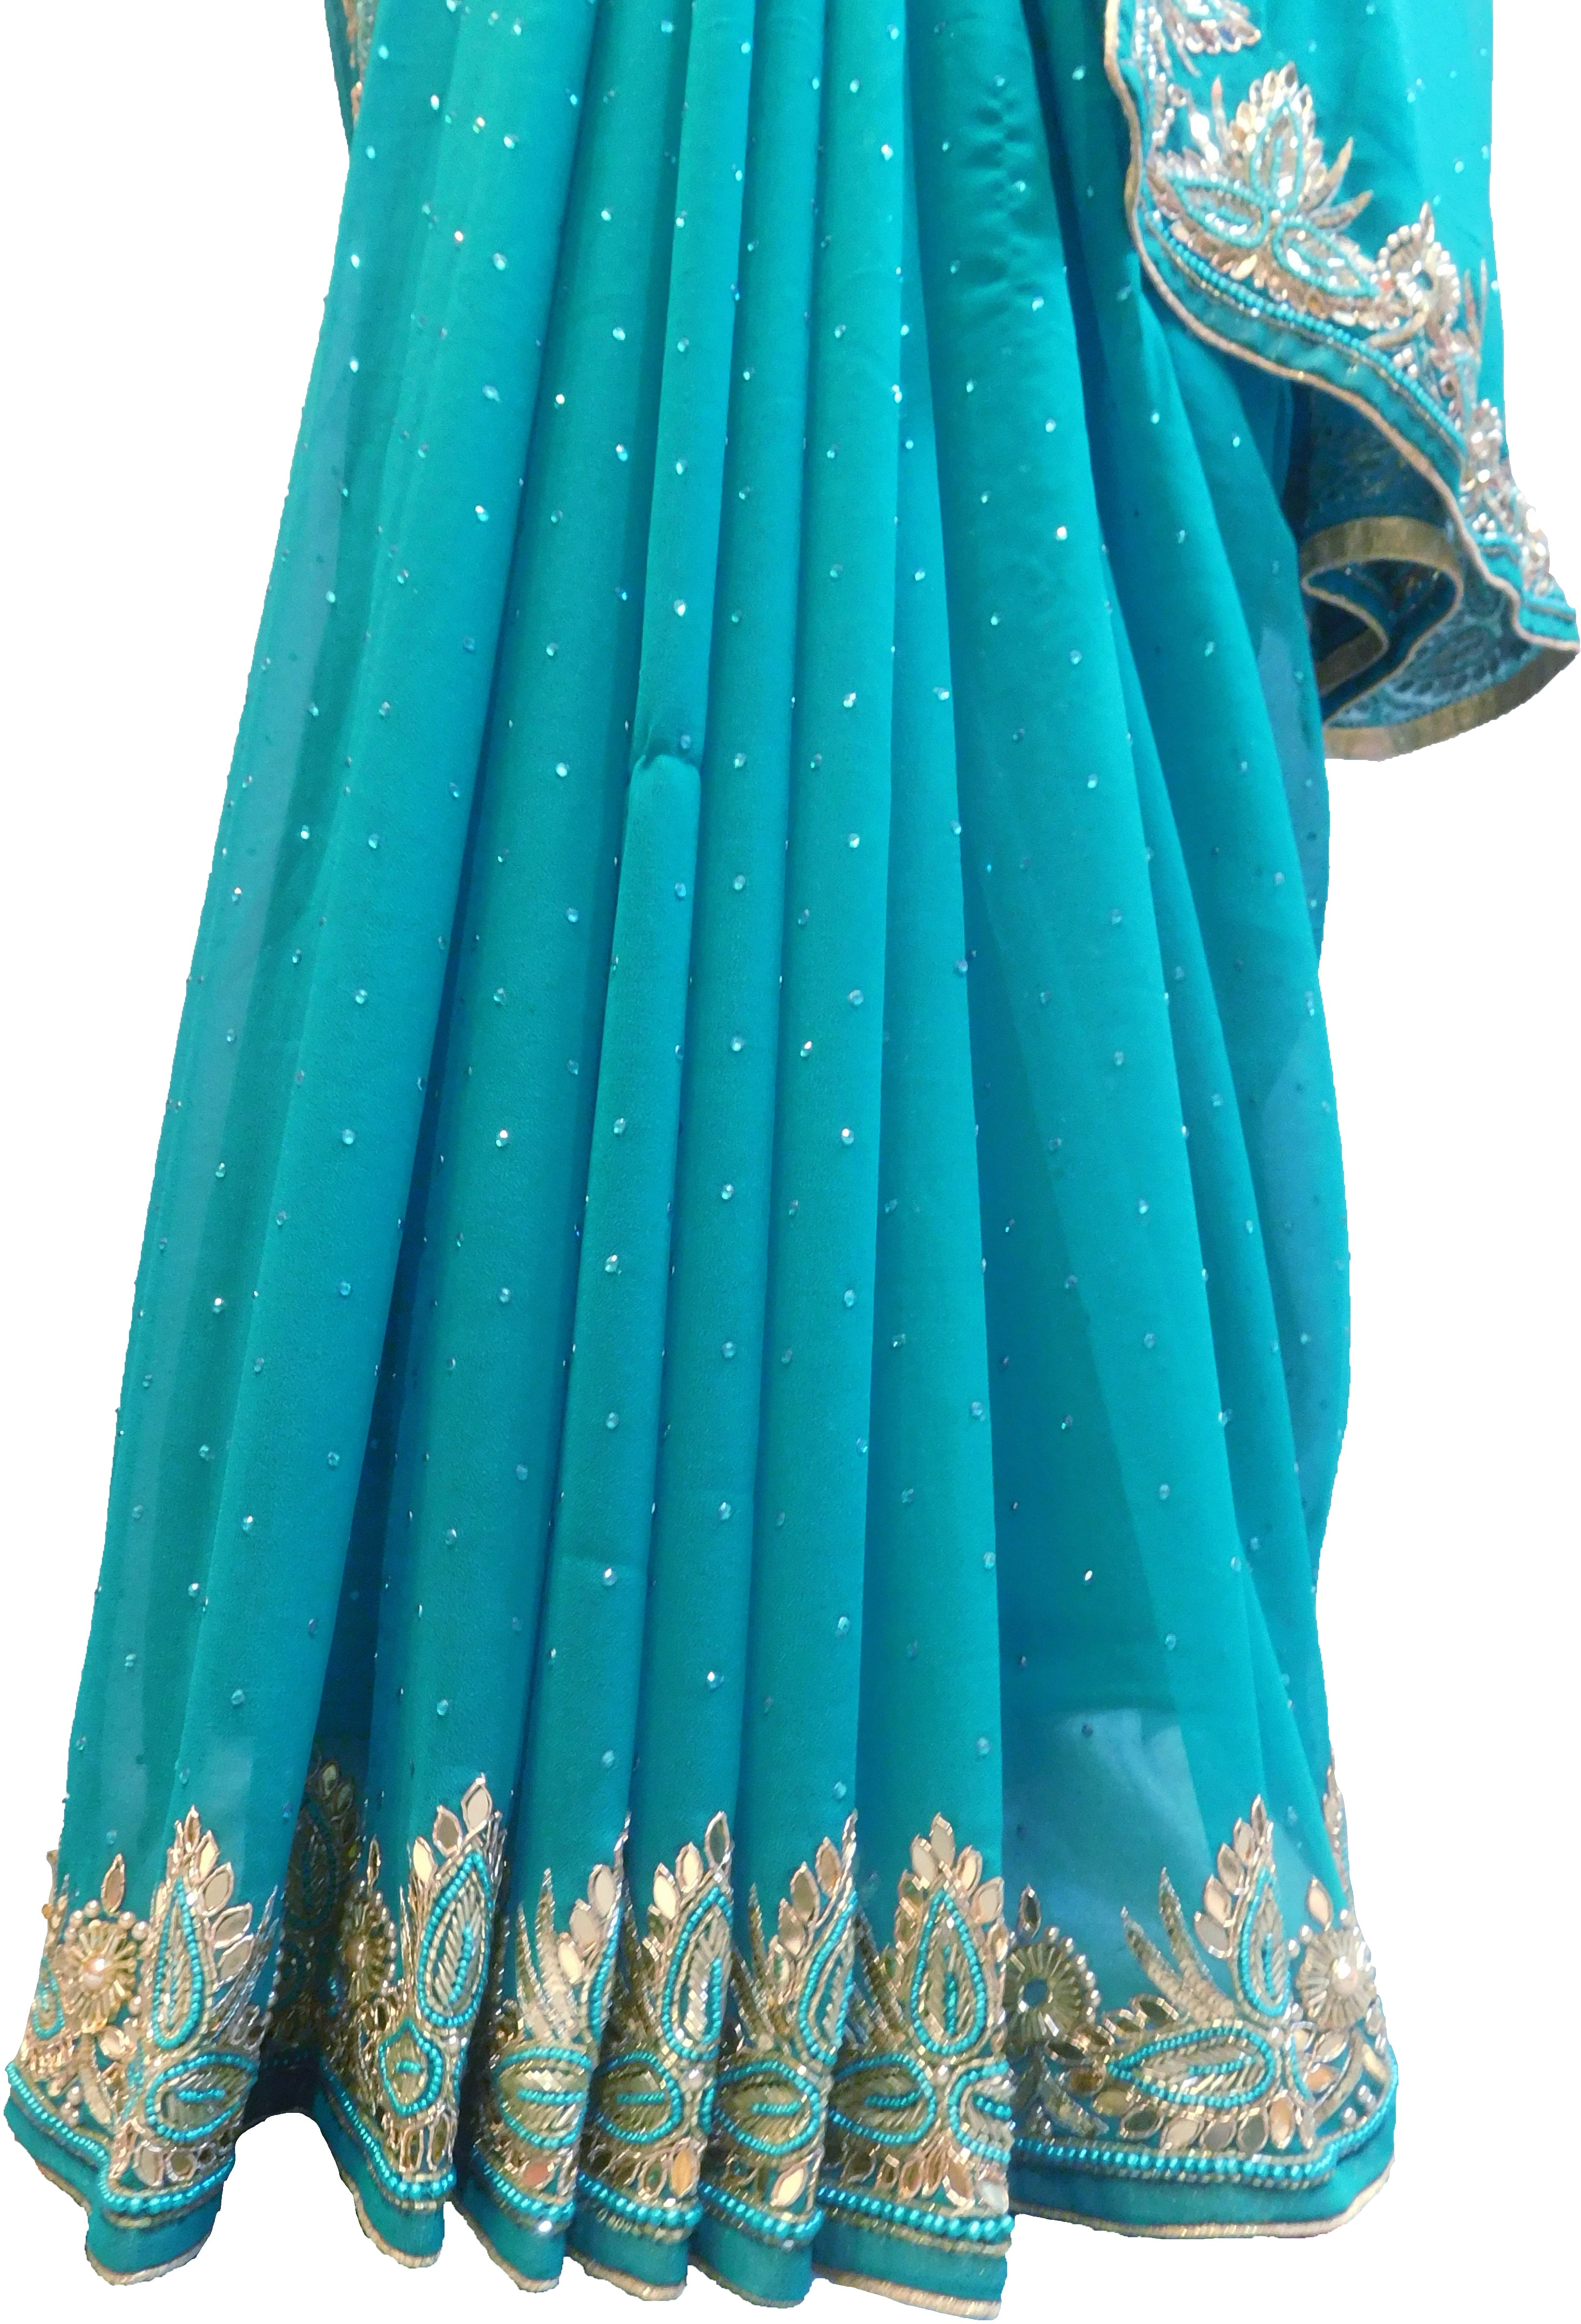 SMSAREE Turquoise Designer Wedding Partywear Georgette Cutdana Stone Beads Pearl & Bullion Hand Embroidery Work Bridal Saree Sari With Blouse Piece F366